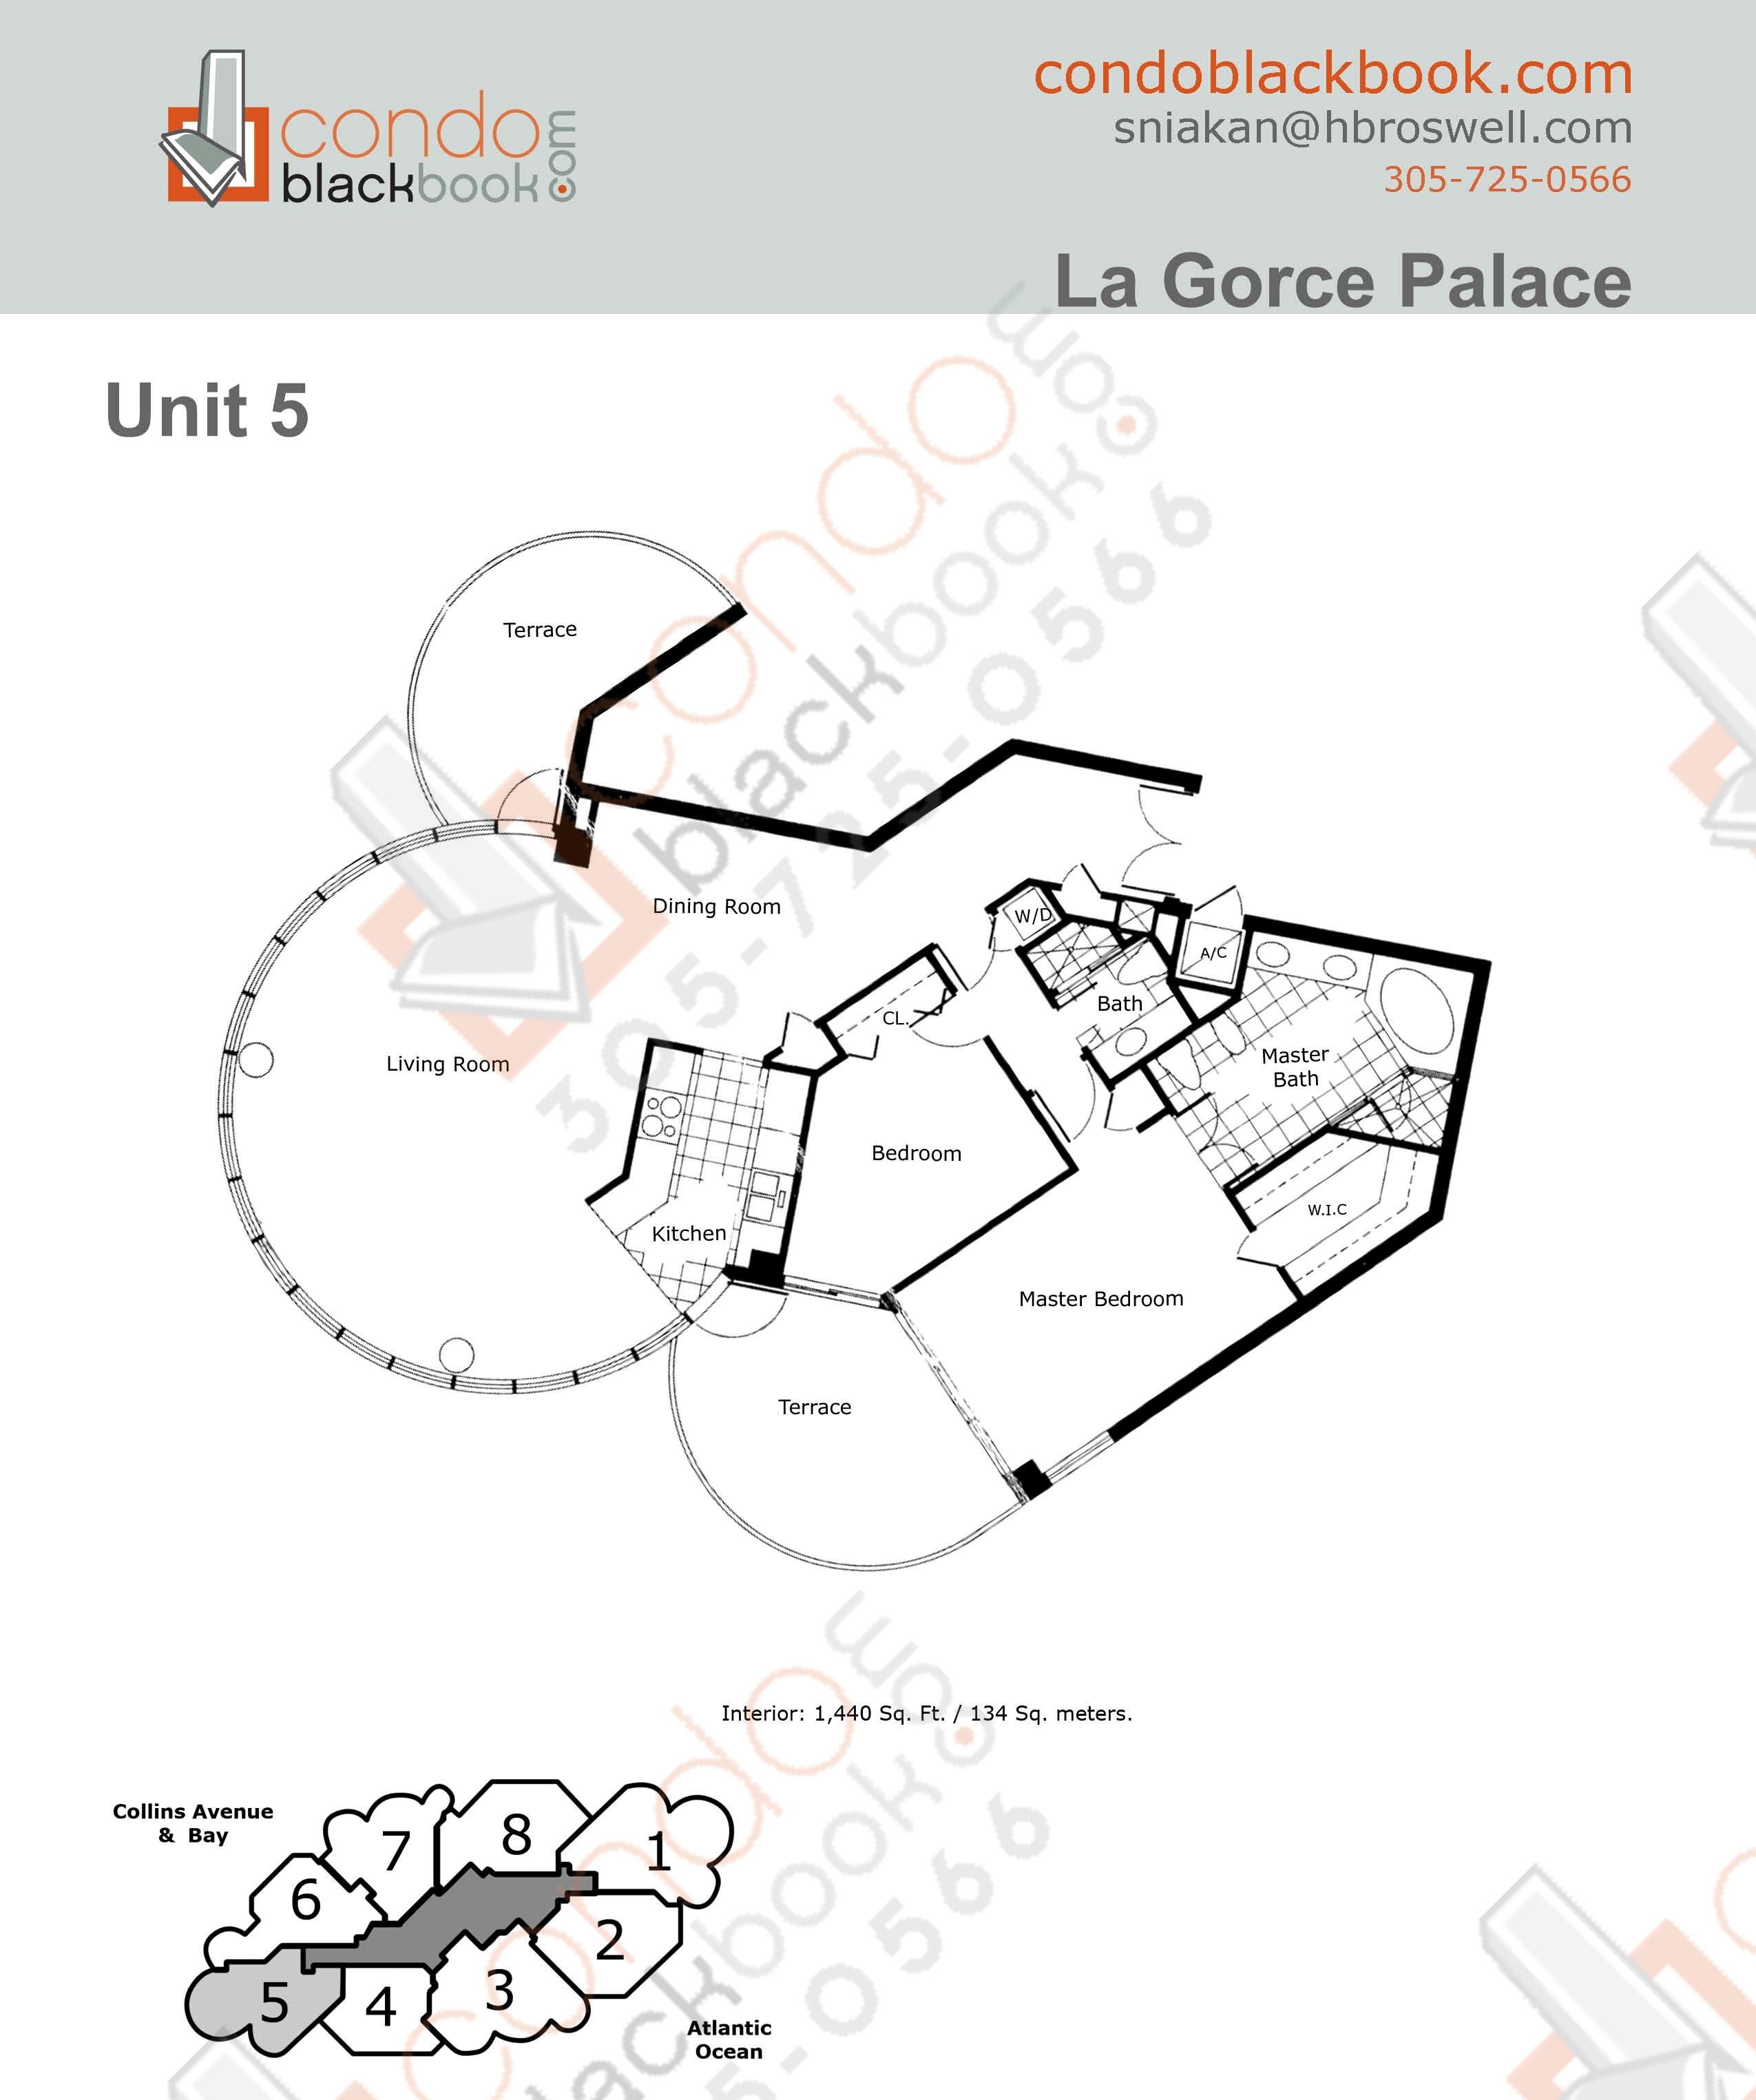 Floor plan for La Gorce North Beach Miami Beach, model 05, line 05, 2/2 bedrooms, 1440 sq ft